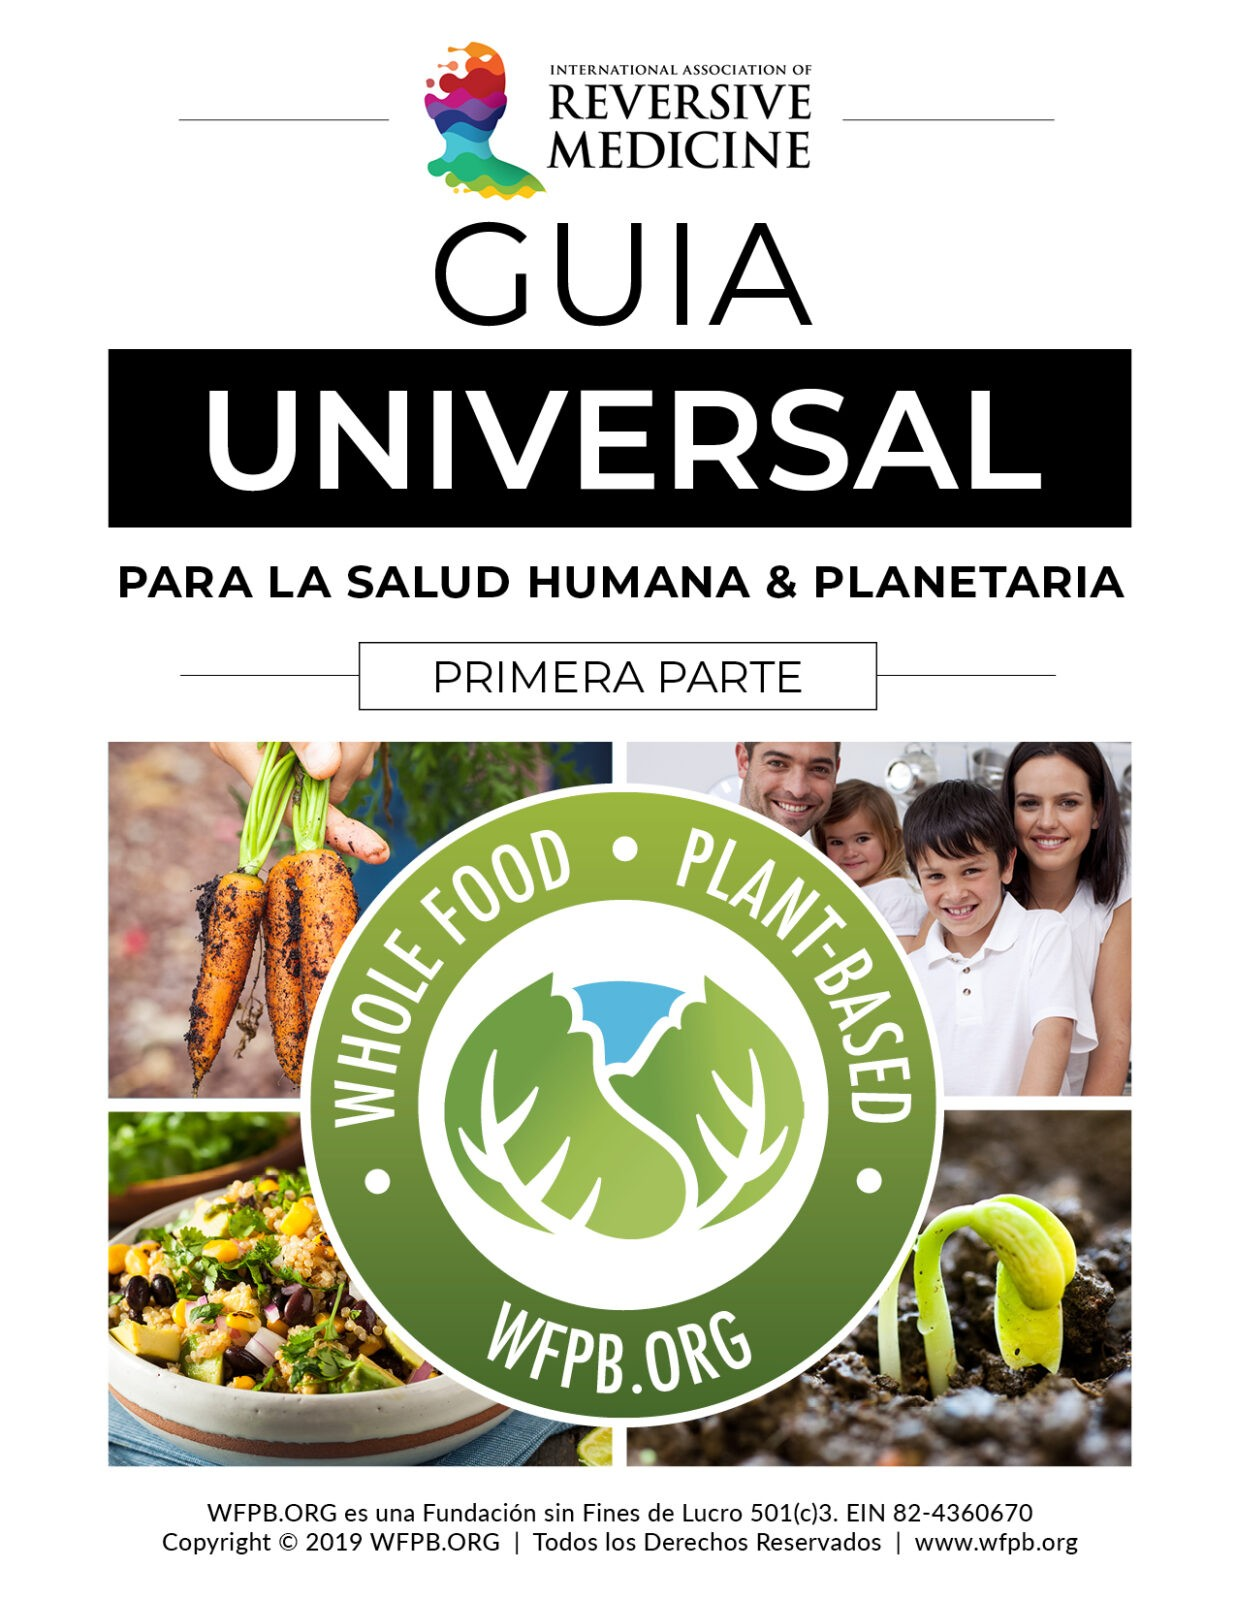 ESPAÑOL | UNIVERSAL GUIDELINE FOR HUMAN AND PLANETARY HEALTH | WFPB.ORG